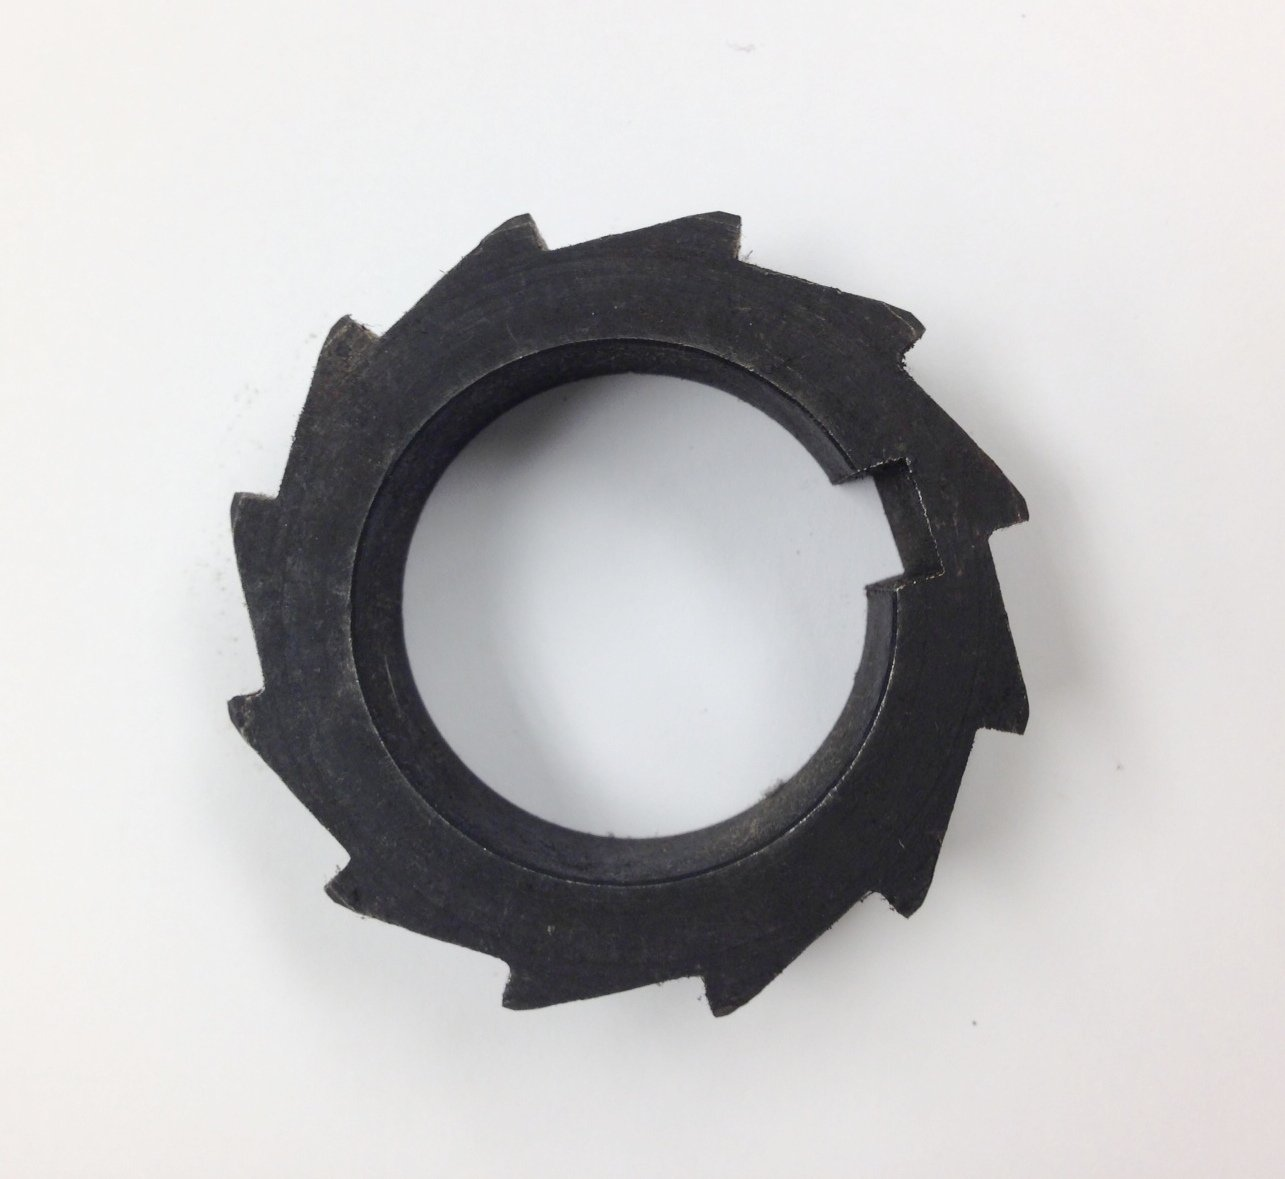 HHIP 8600-3402 Gear for 3 Ton Ratchet Type Arbor Press, 56 mm ID